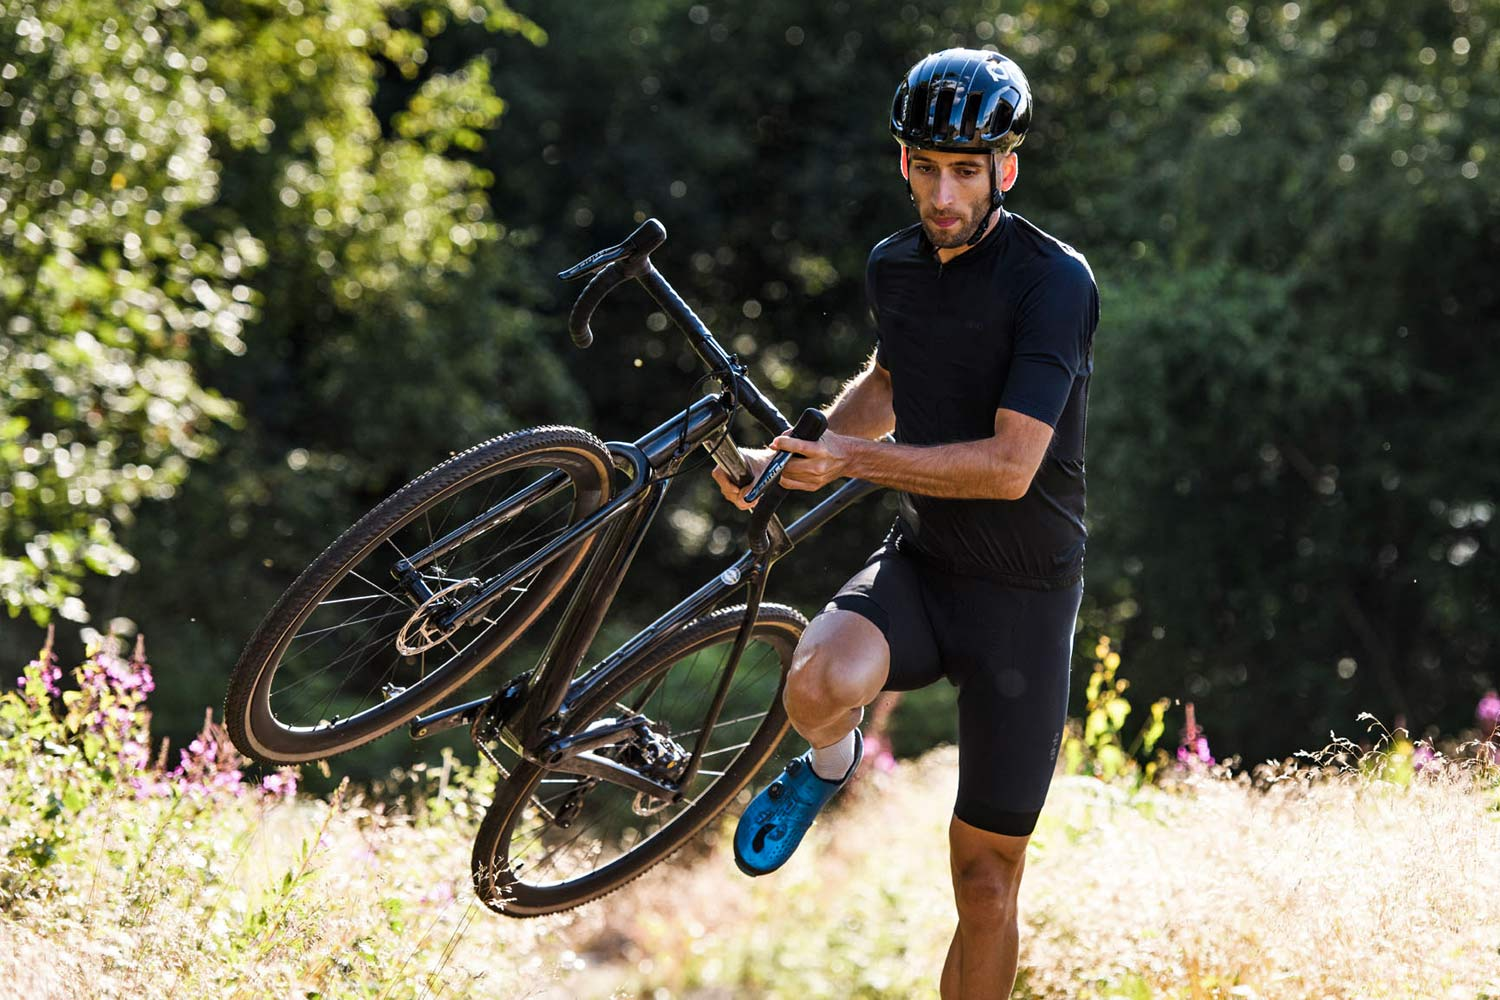 2021 Vitus Energie EVO cyclocross bike, race-ready lightweight affordable carbon CX bike, suitcase carry